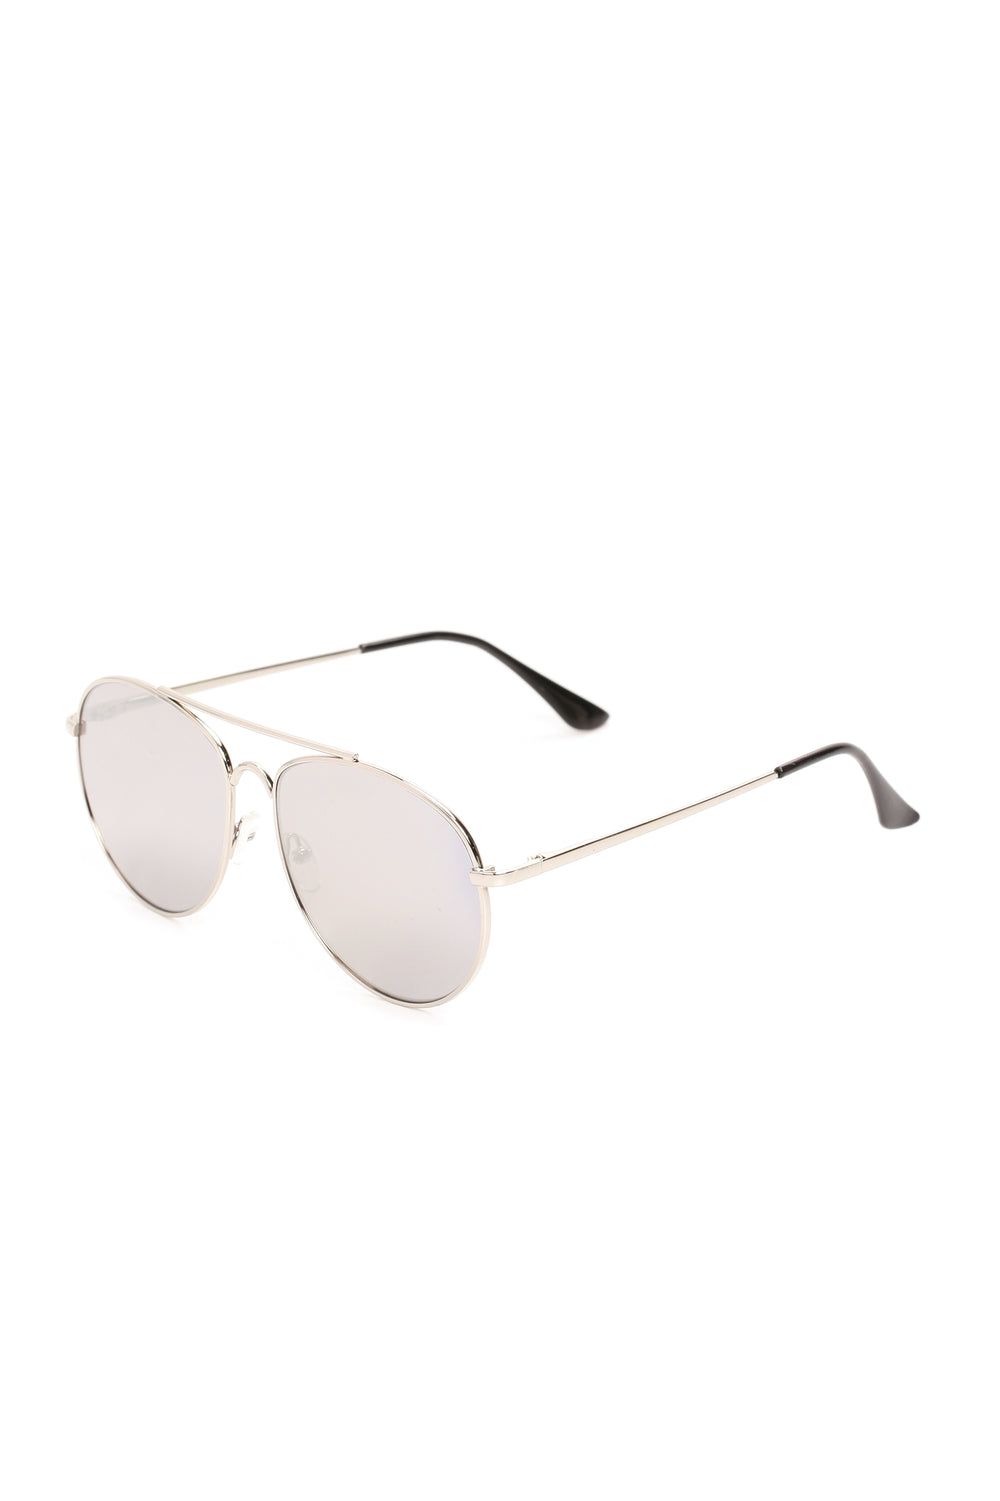 Baldwin Sunglasses - Silver